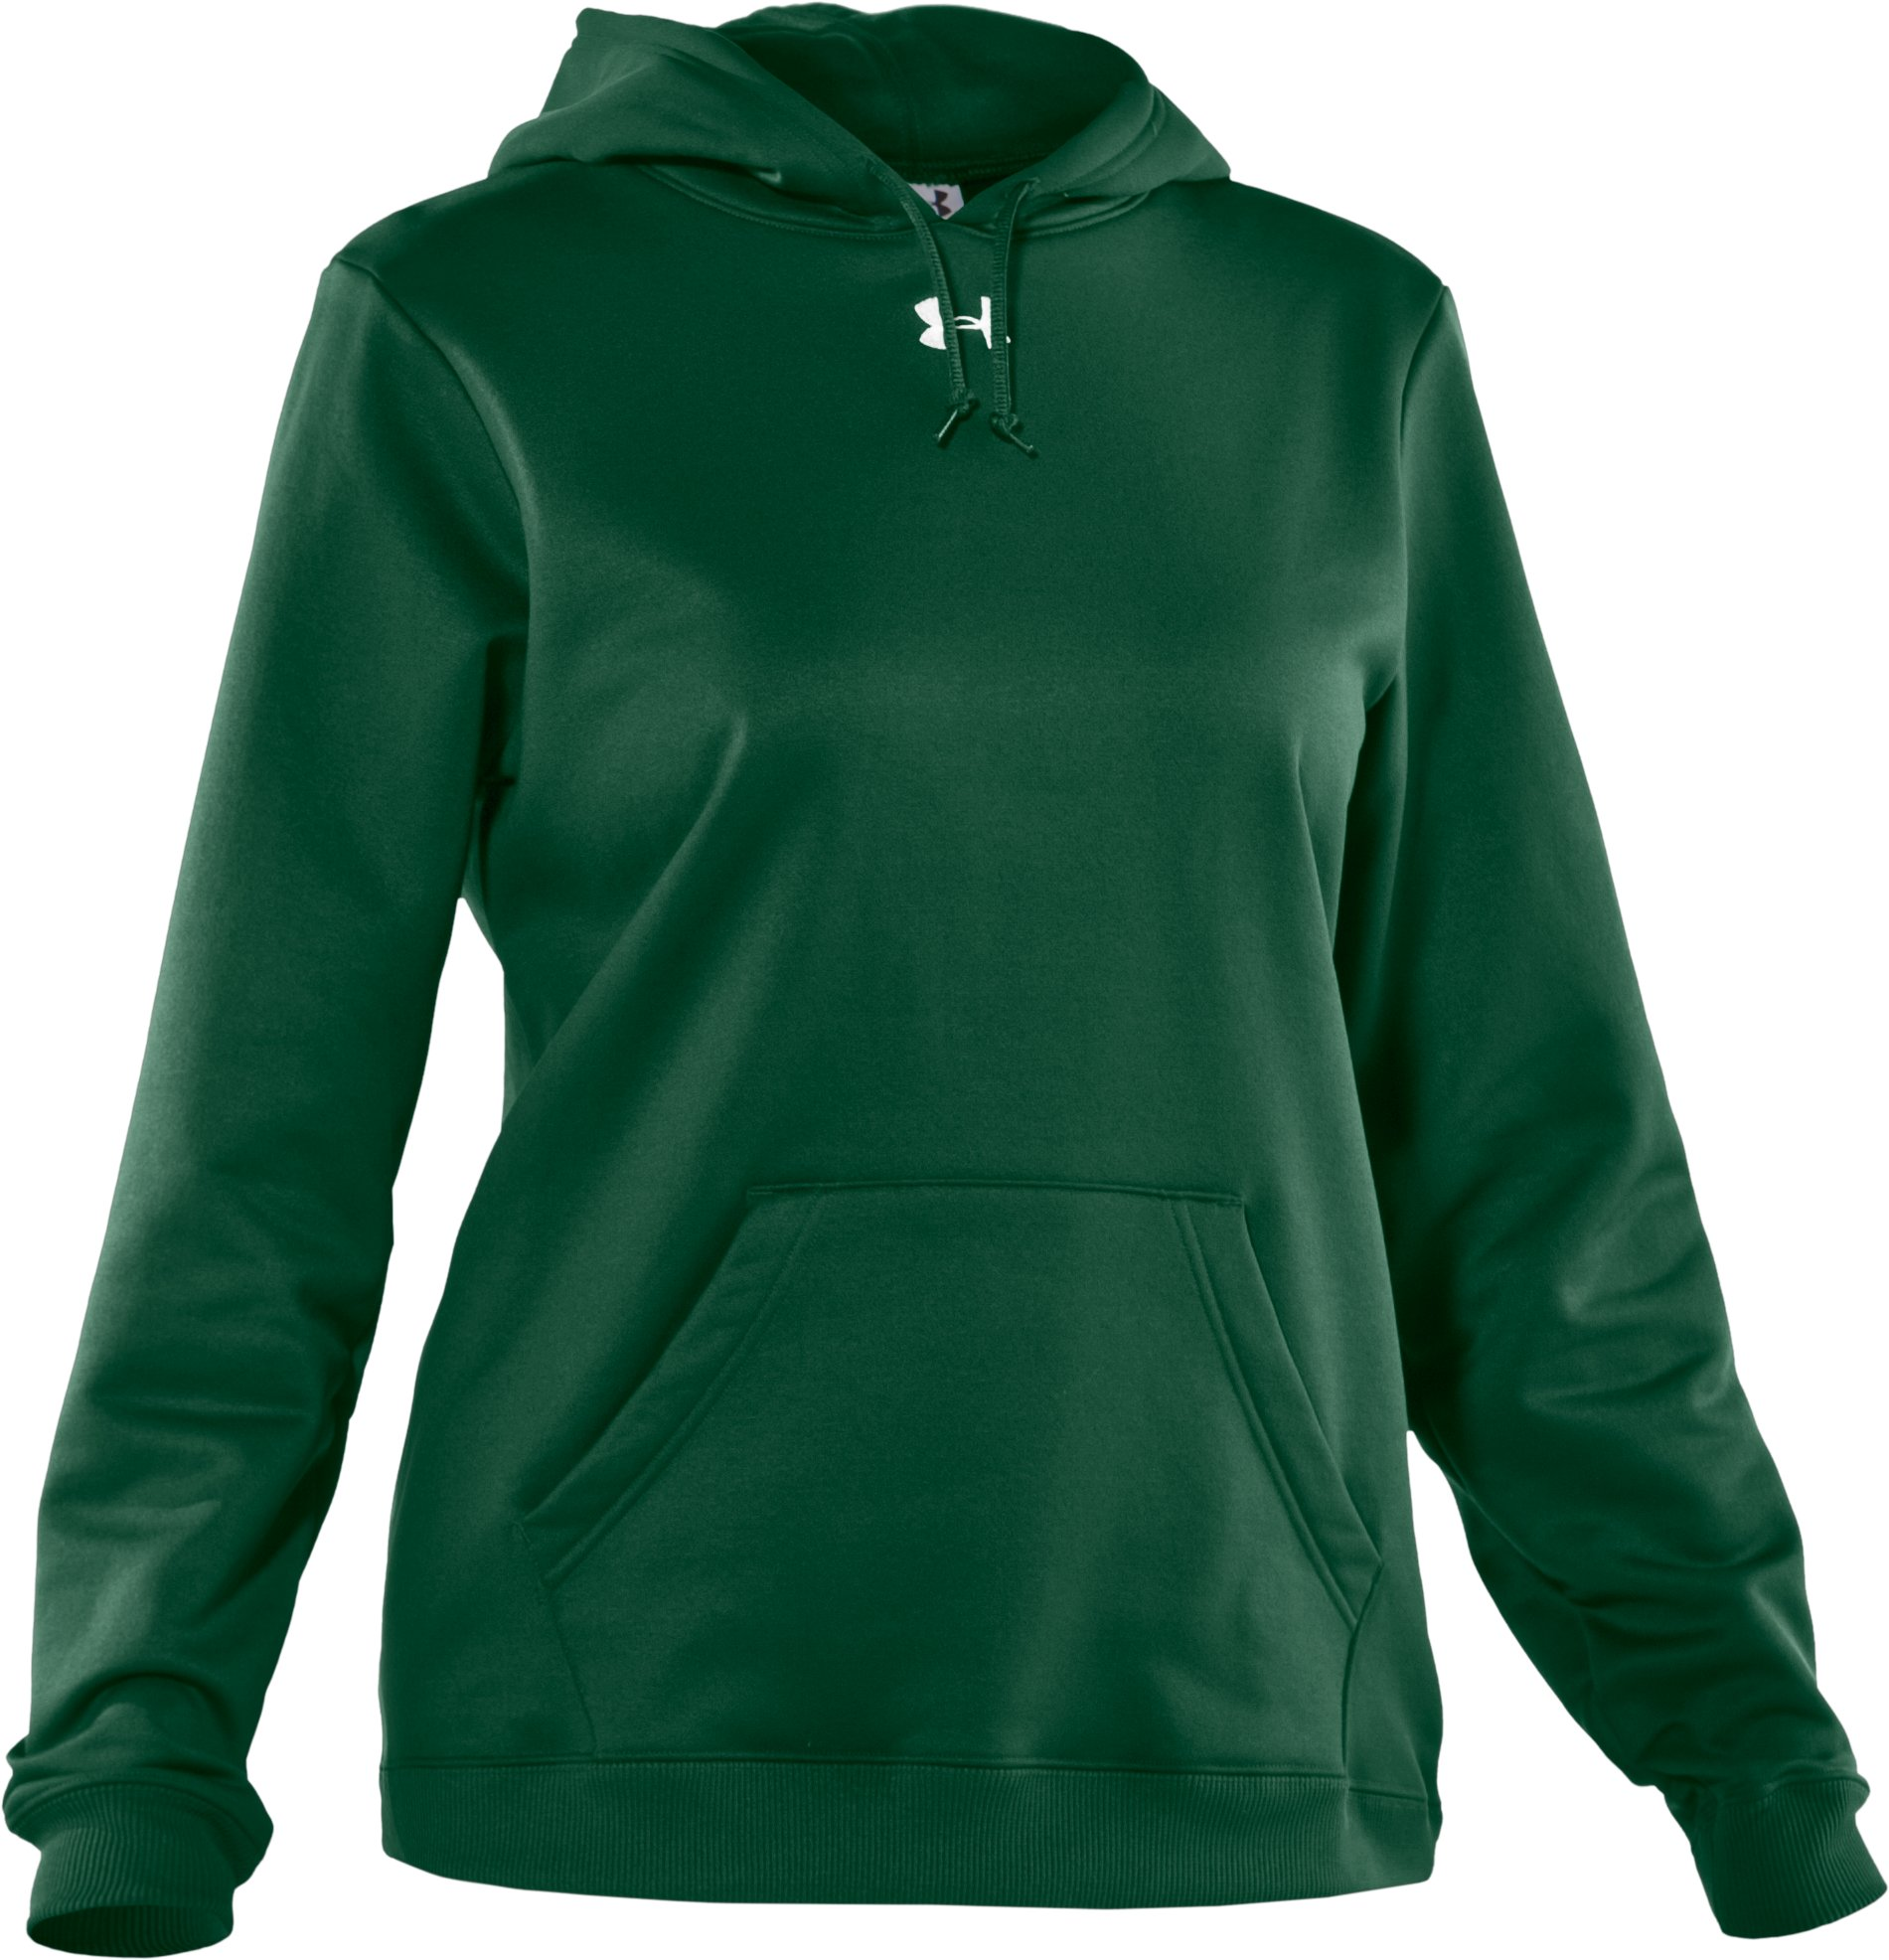 Women's Armour® Fleece Team Hoodie, Forest Green